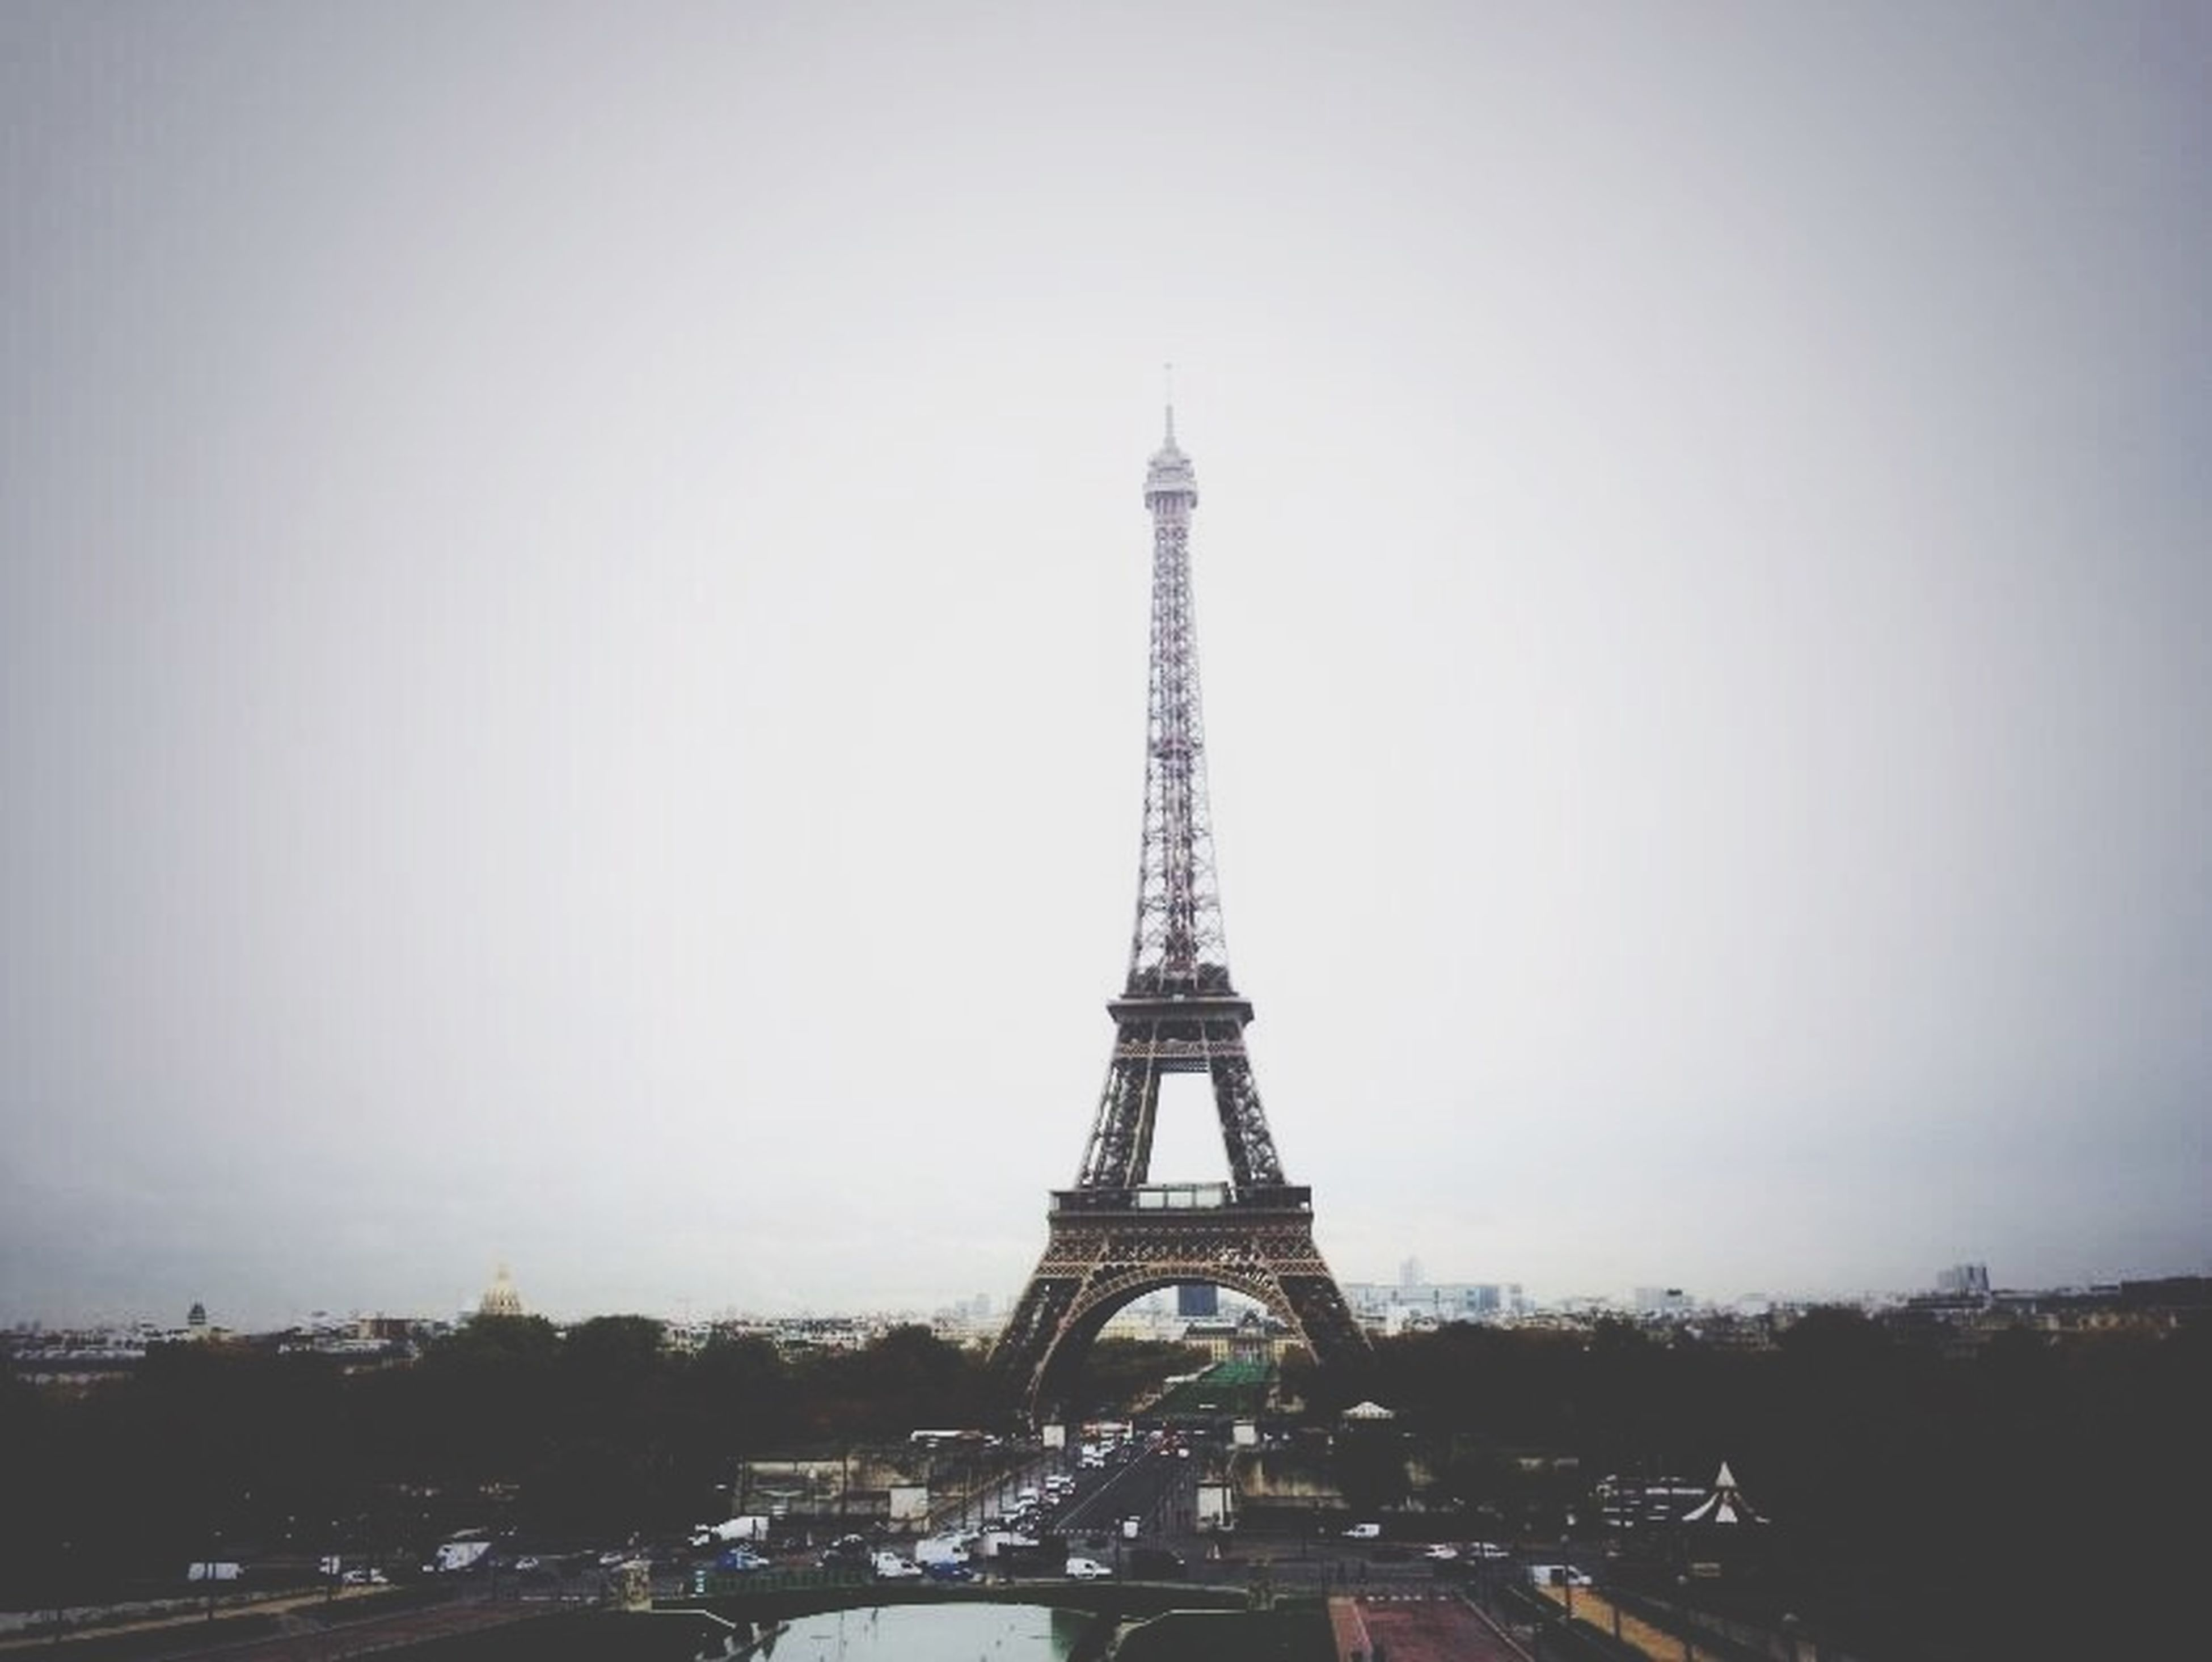 eiffel tower, built structure, architecture, tower, tall - high, international landmark, famous place, travel destinations, capital cities, tourism, travel, culture, clear sky, city, metal, sky, building exterior, copy space, communications tower, low angle view